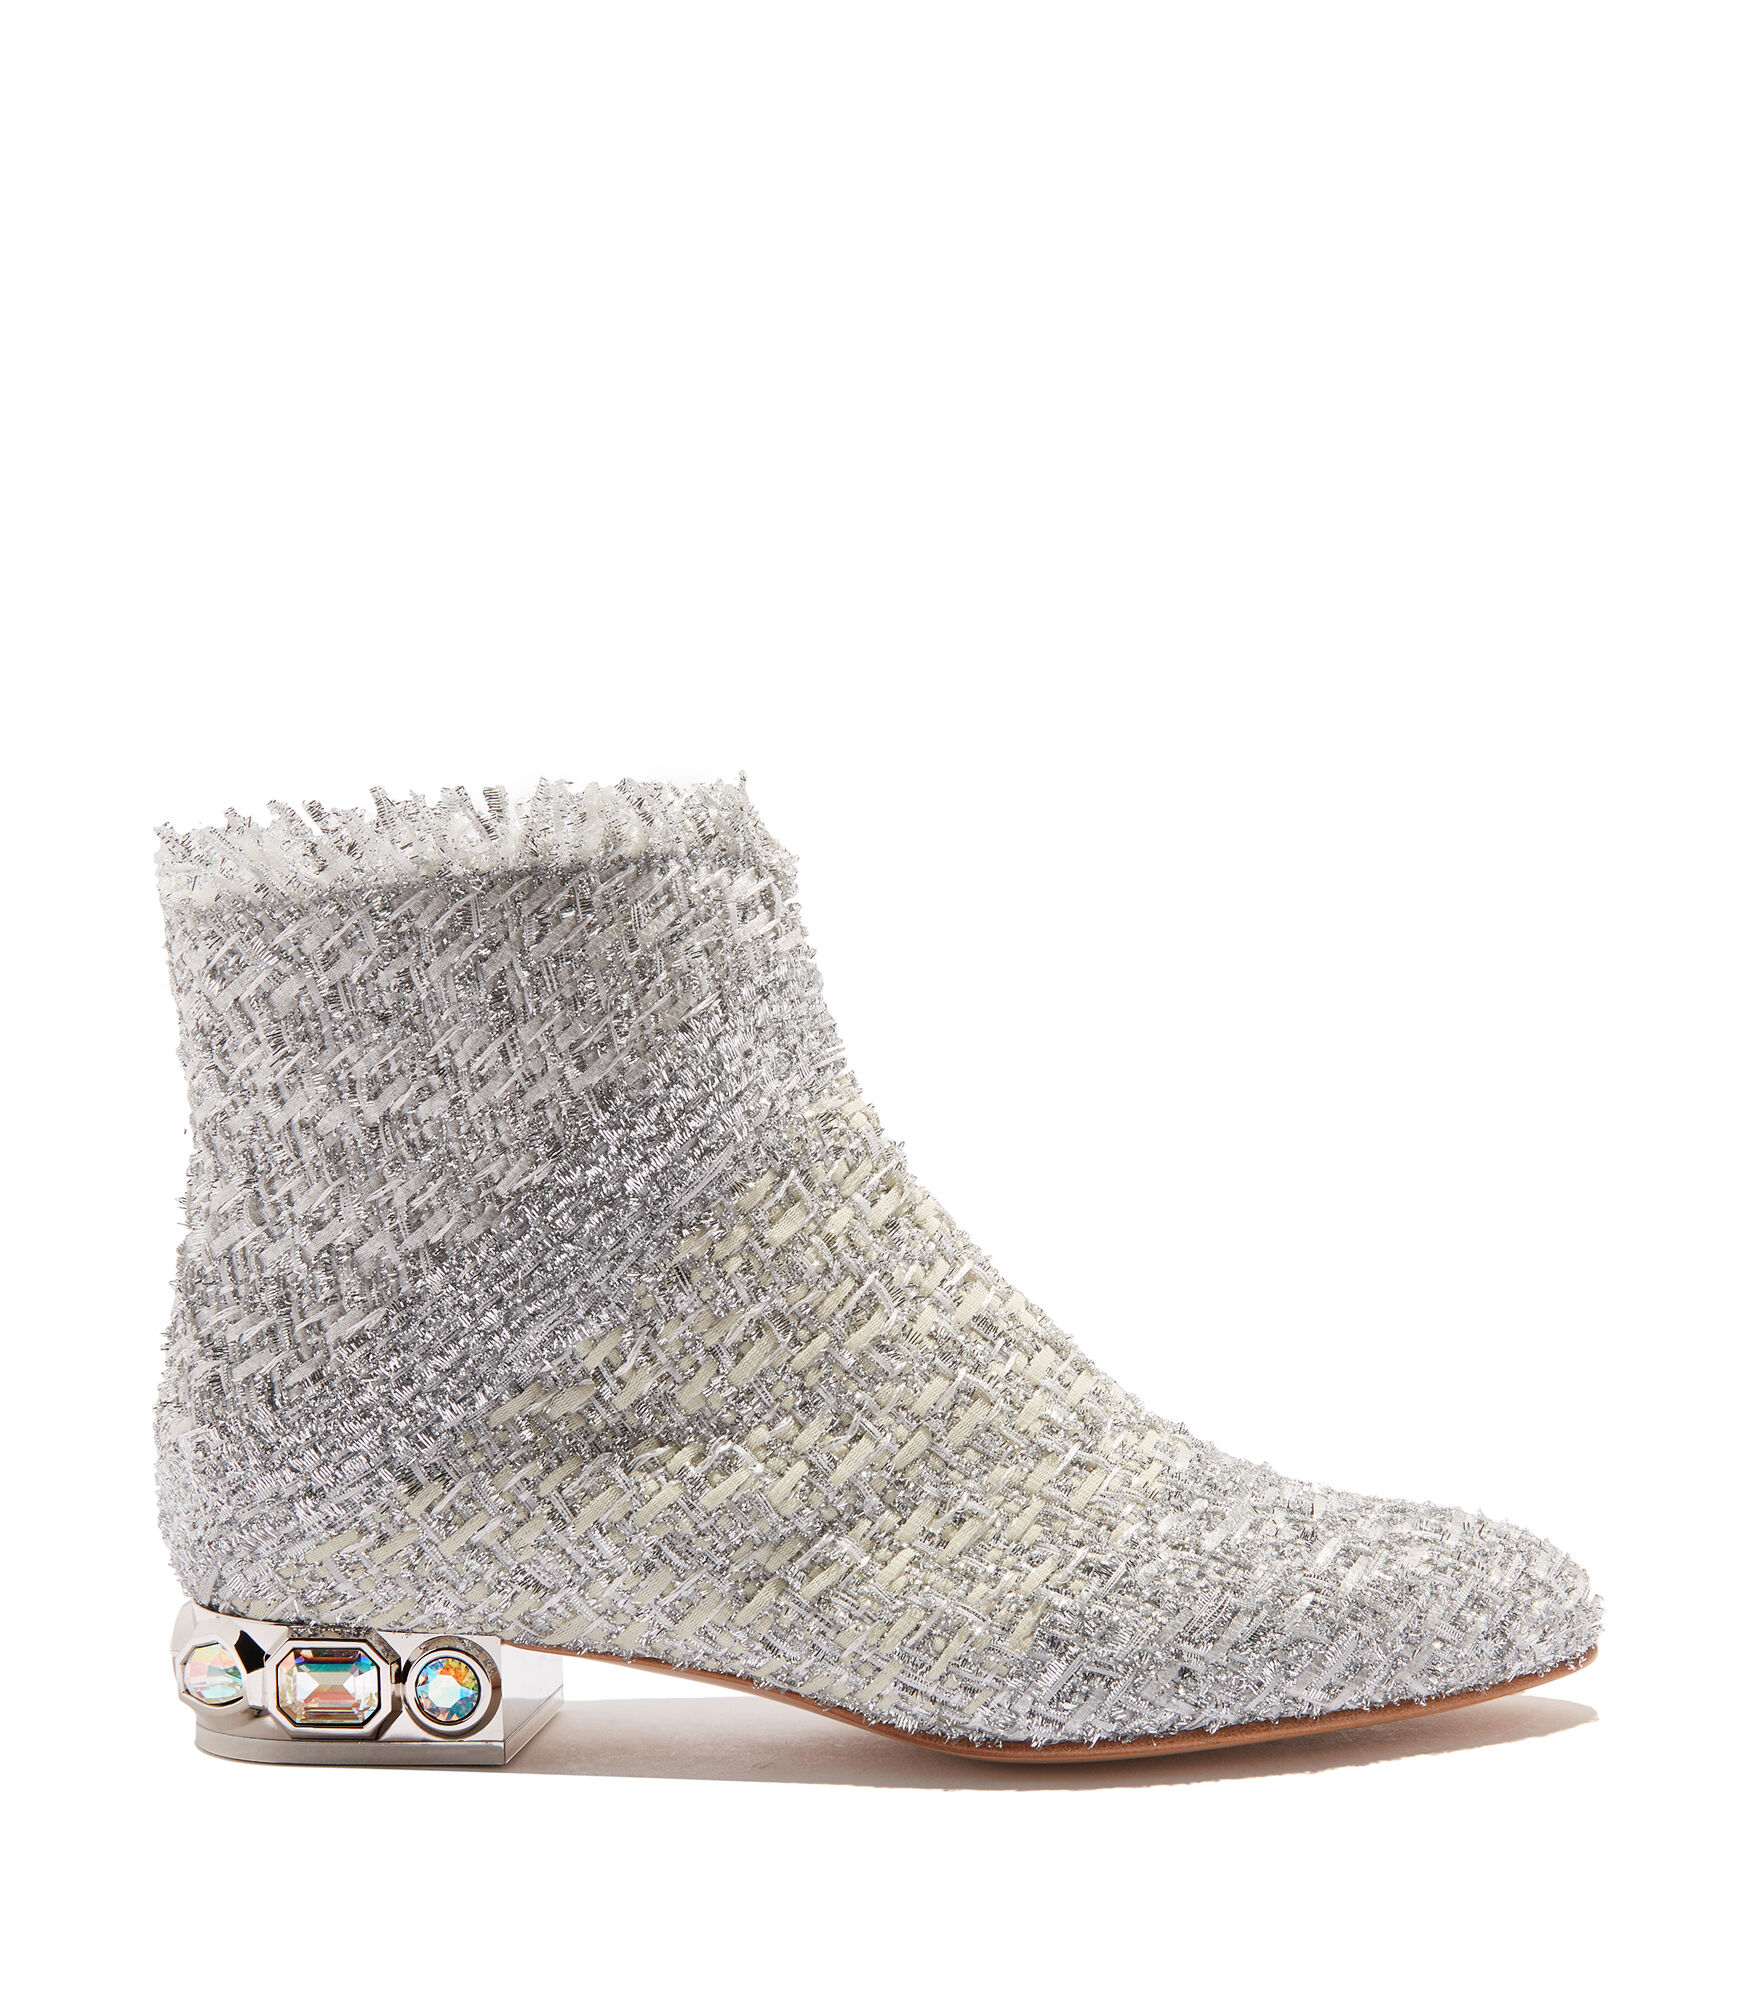 Casadei Ankle Boots - Bisanzio Silver Lola : fabric entwined with lurex strings